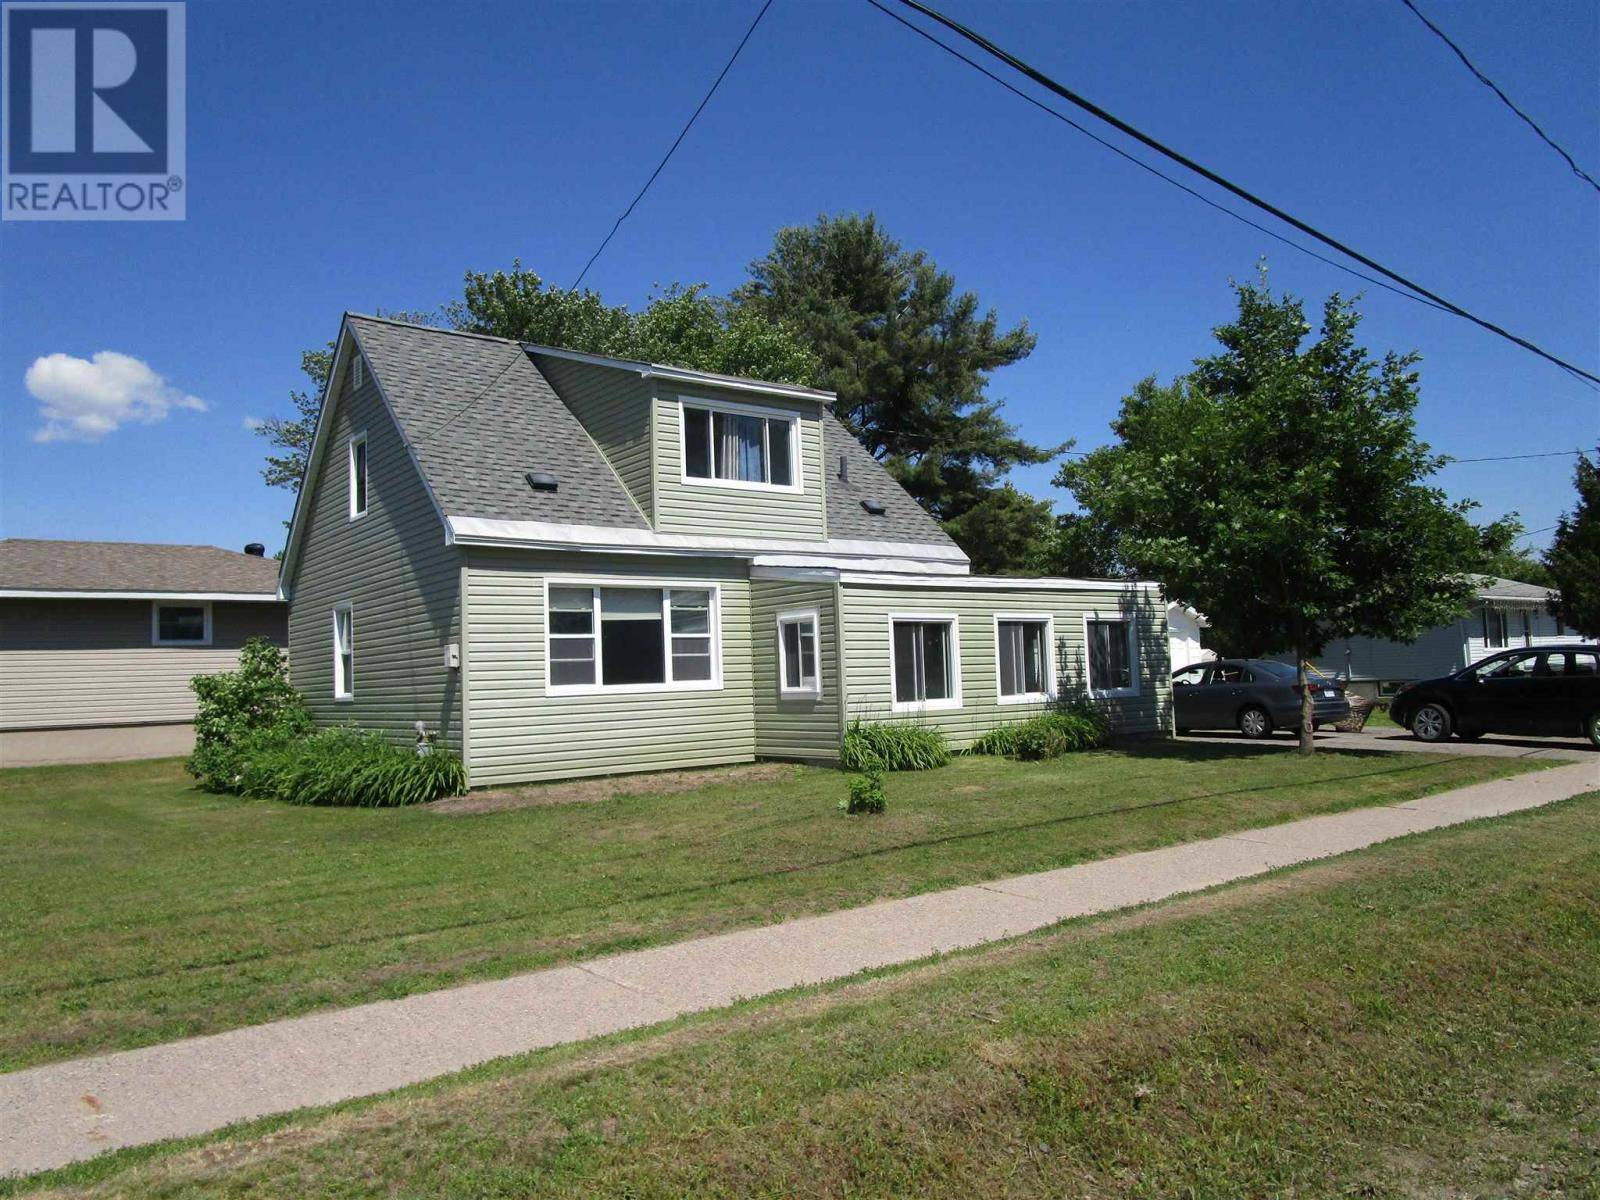 House for sale at 88 Adeline Ave Sault Ste. Marie Ontario - MLS: SM127863